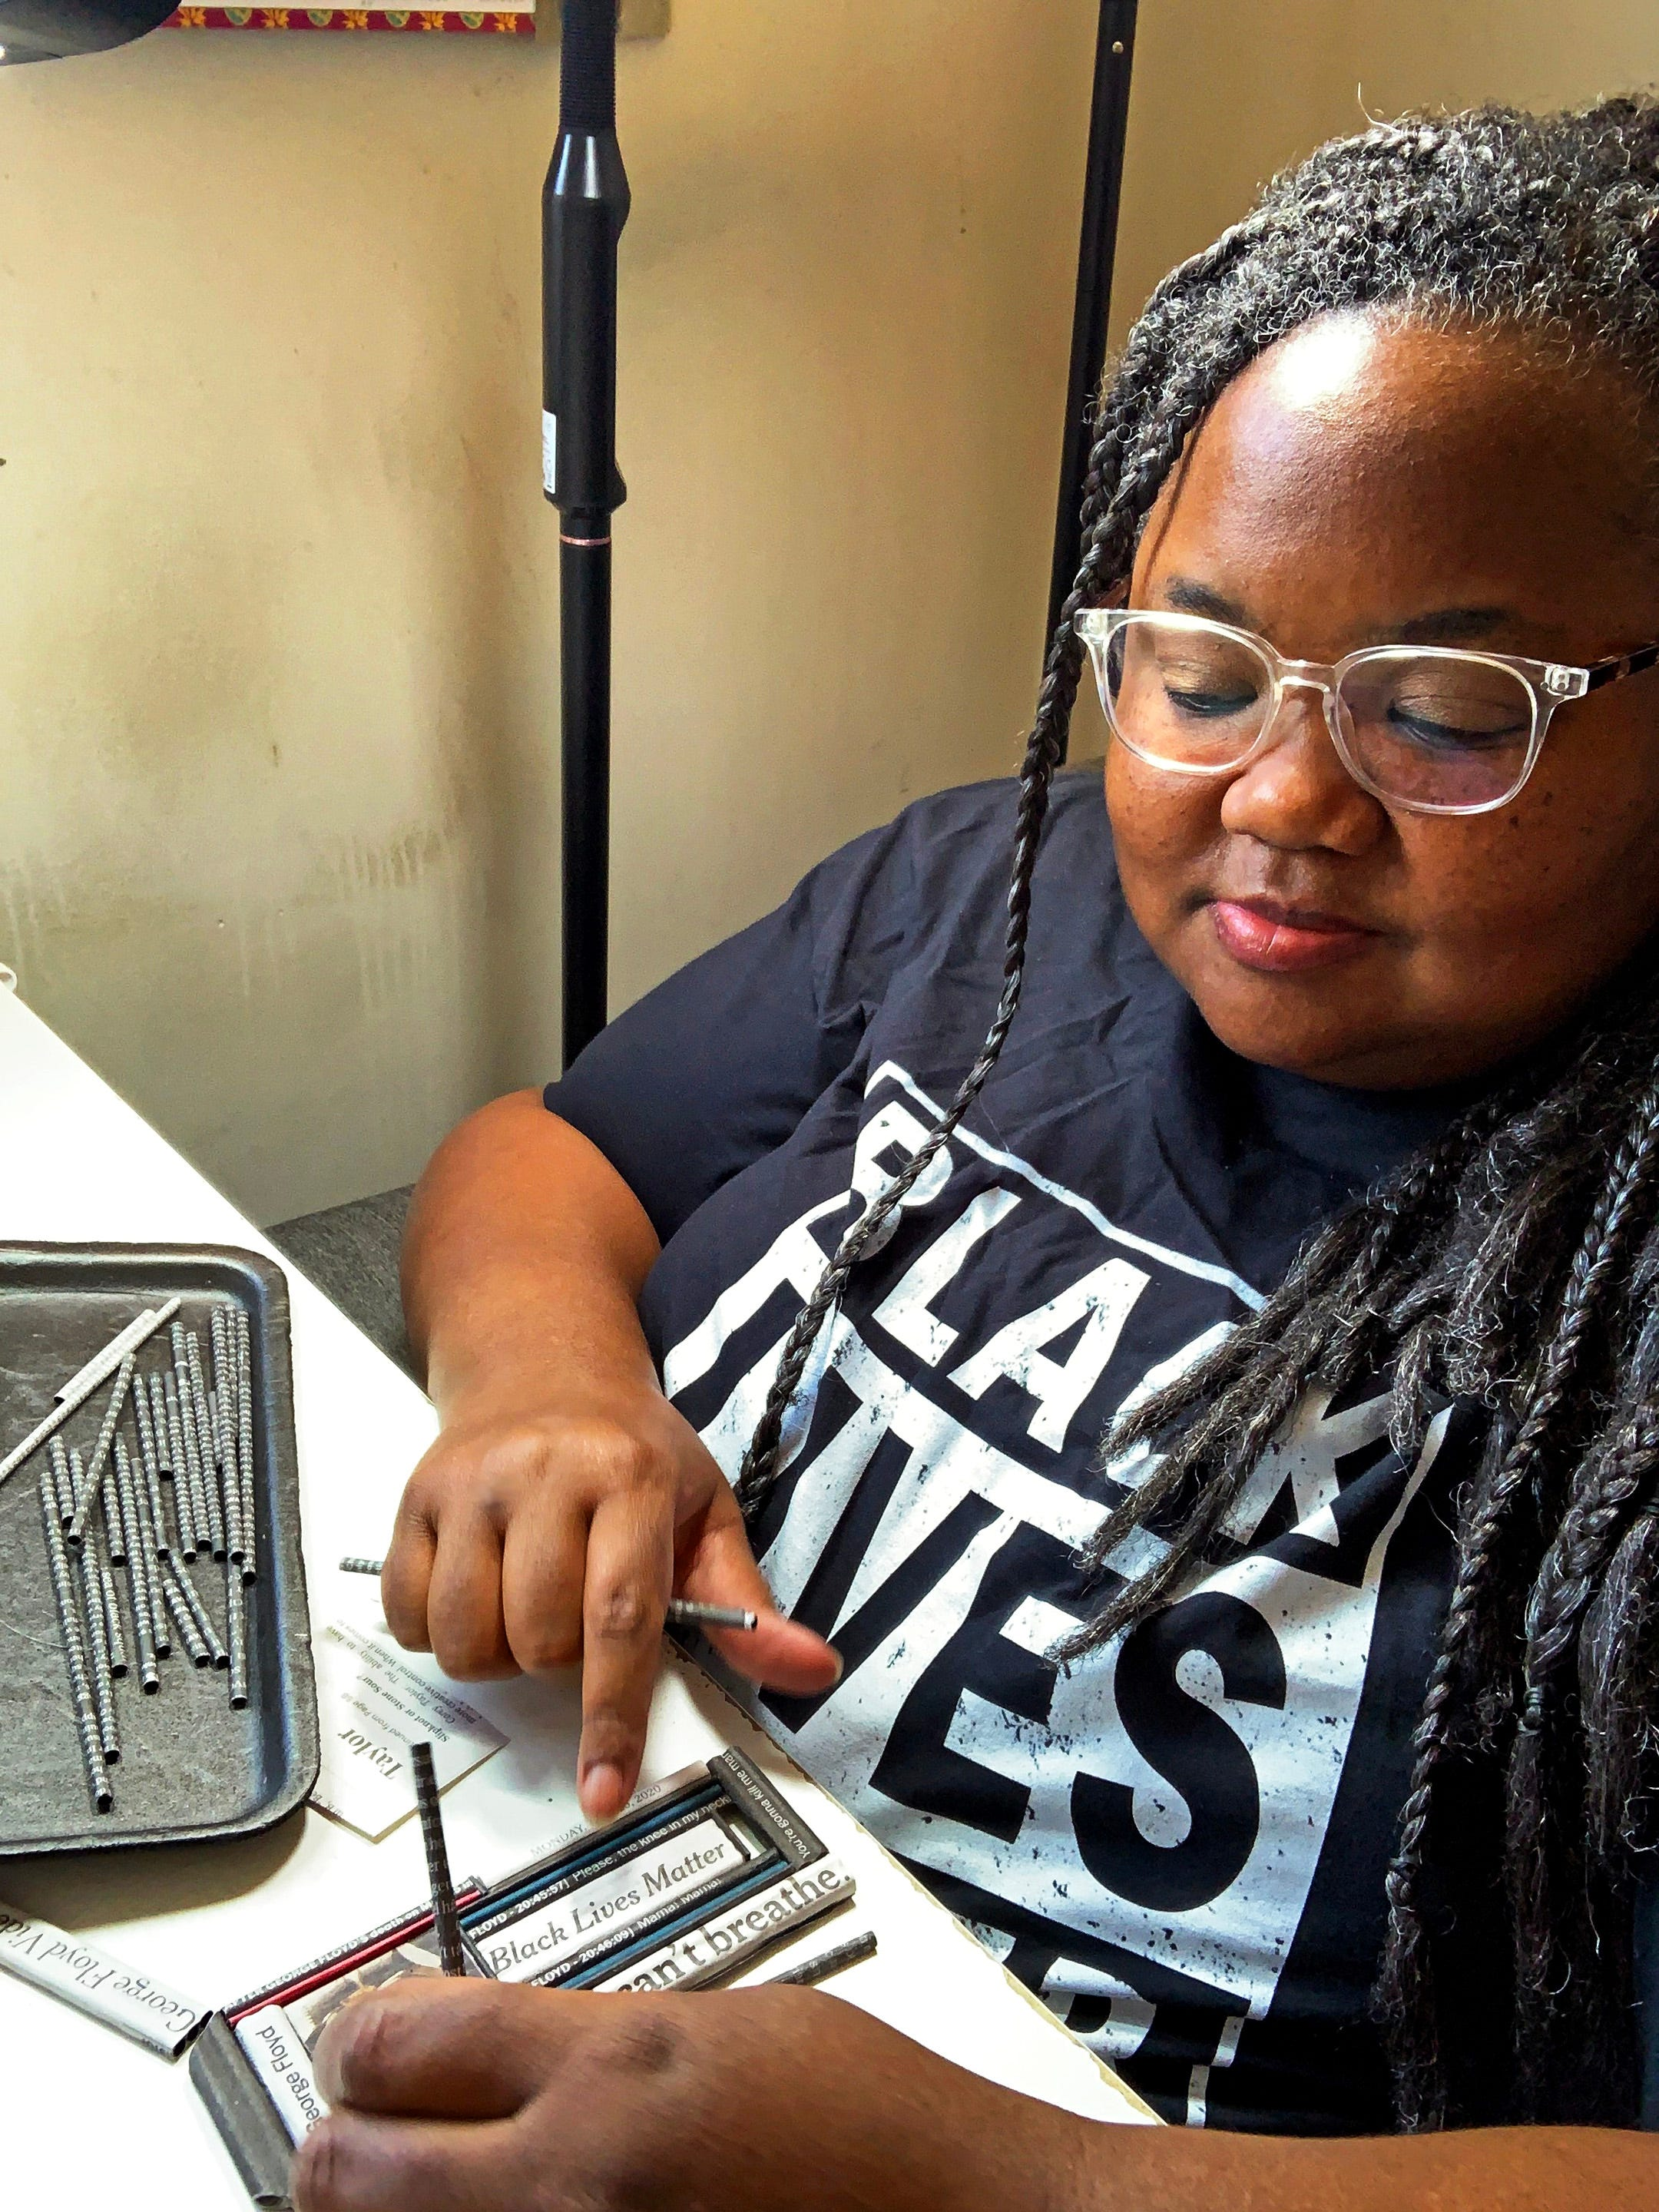 """Holly Anne Mitchell makes and sells jewelry fashioned from newspaper clippings. After George Floyd's murder, she made an elaborate """"I Can't Breathe"""" necklace featuring his likeness and headlines from the event. She is pictured here making that necklace."""